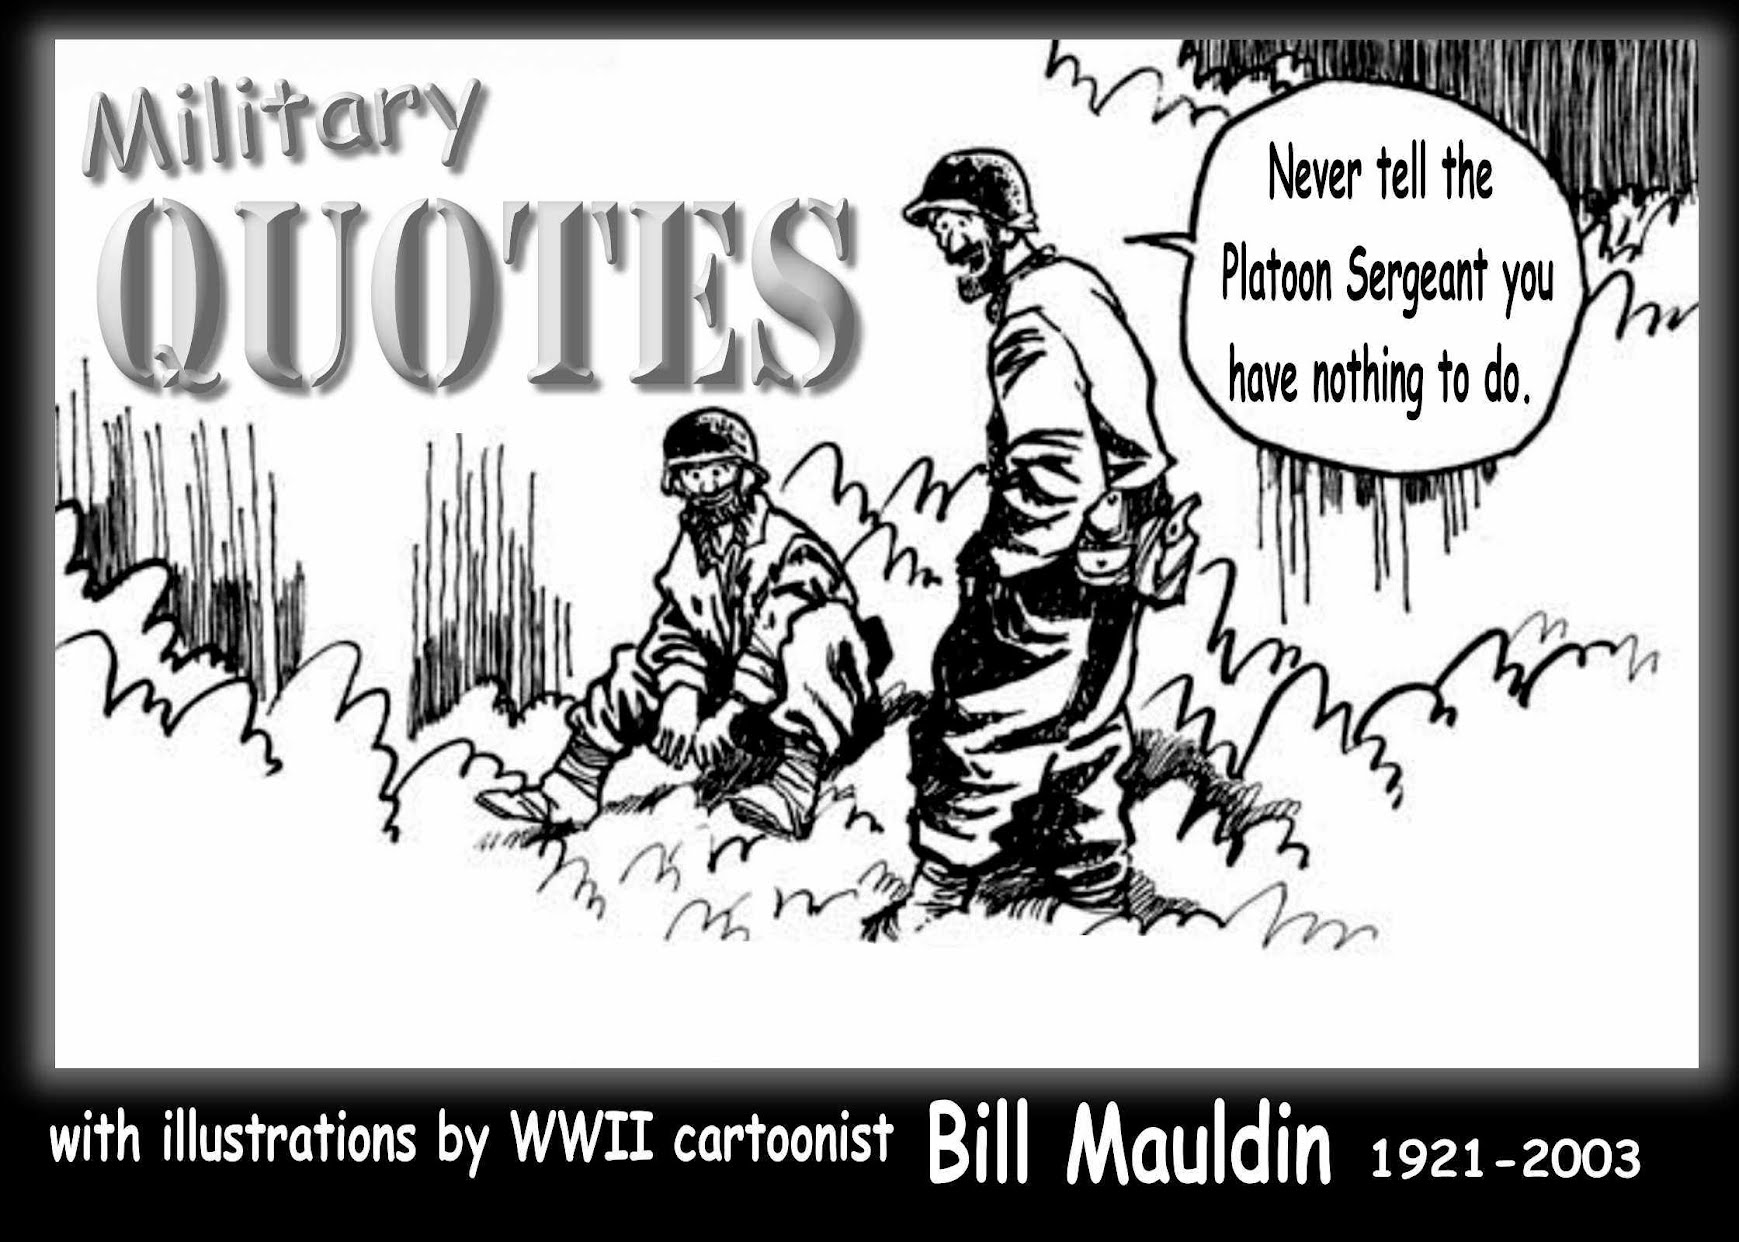 Military Quotes Military Quotes   DAVChapter25 Military Quotes